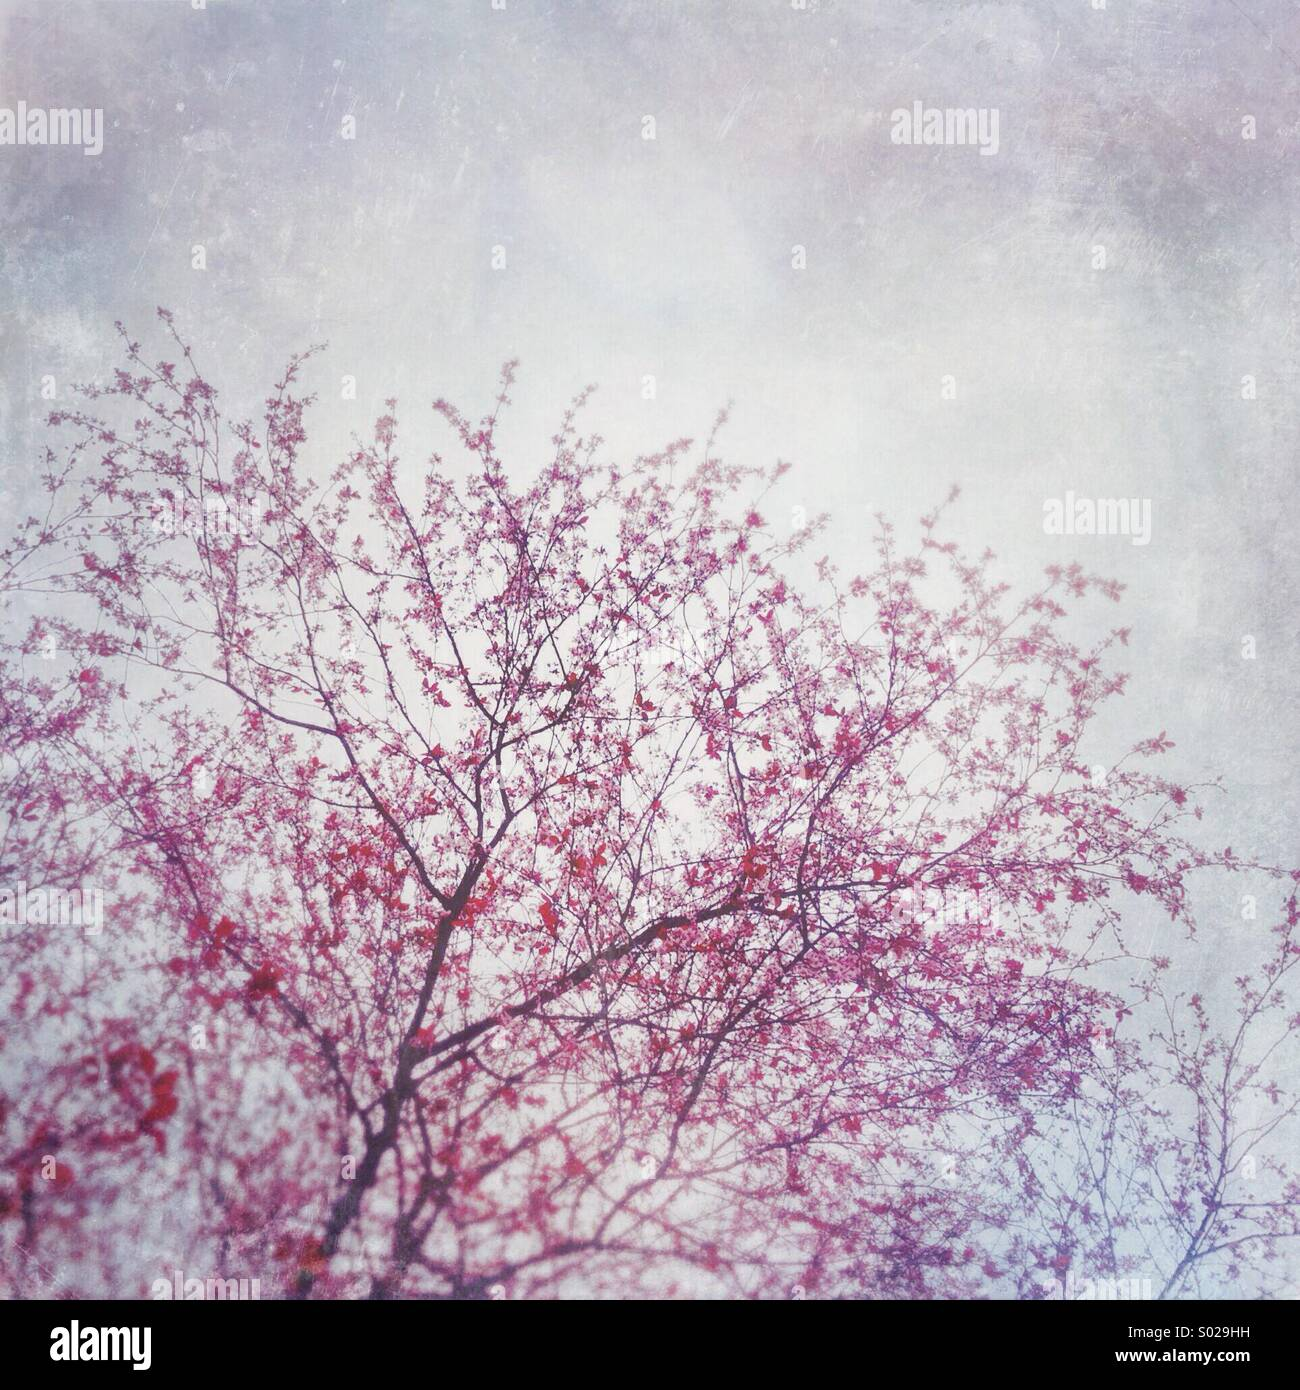 Spring pink cherry blossoms against a bright overcast sky. Stock Photo